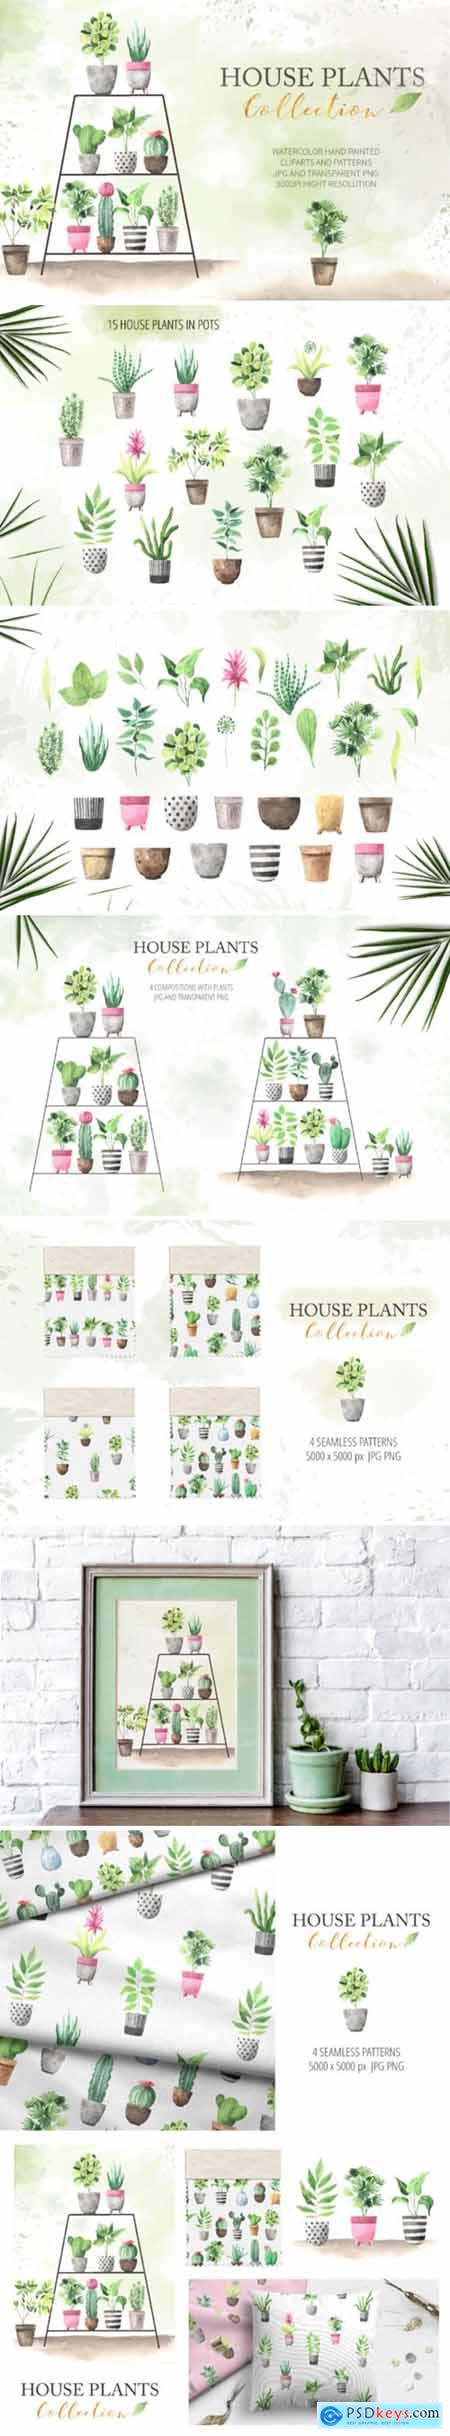 Watercolor House Plants Collection 3551693